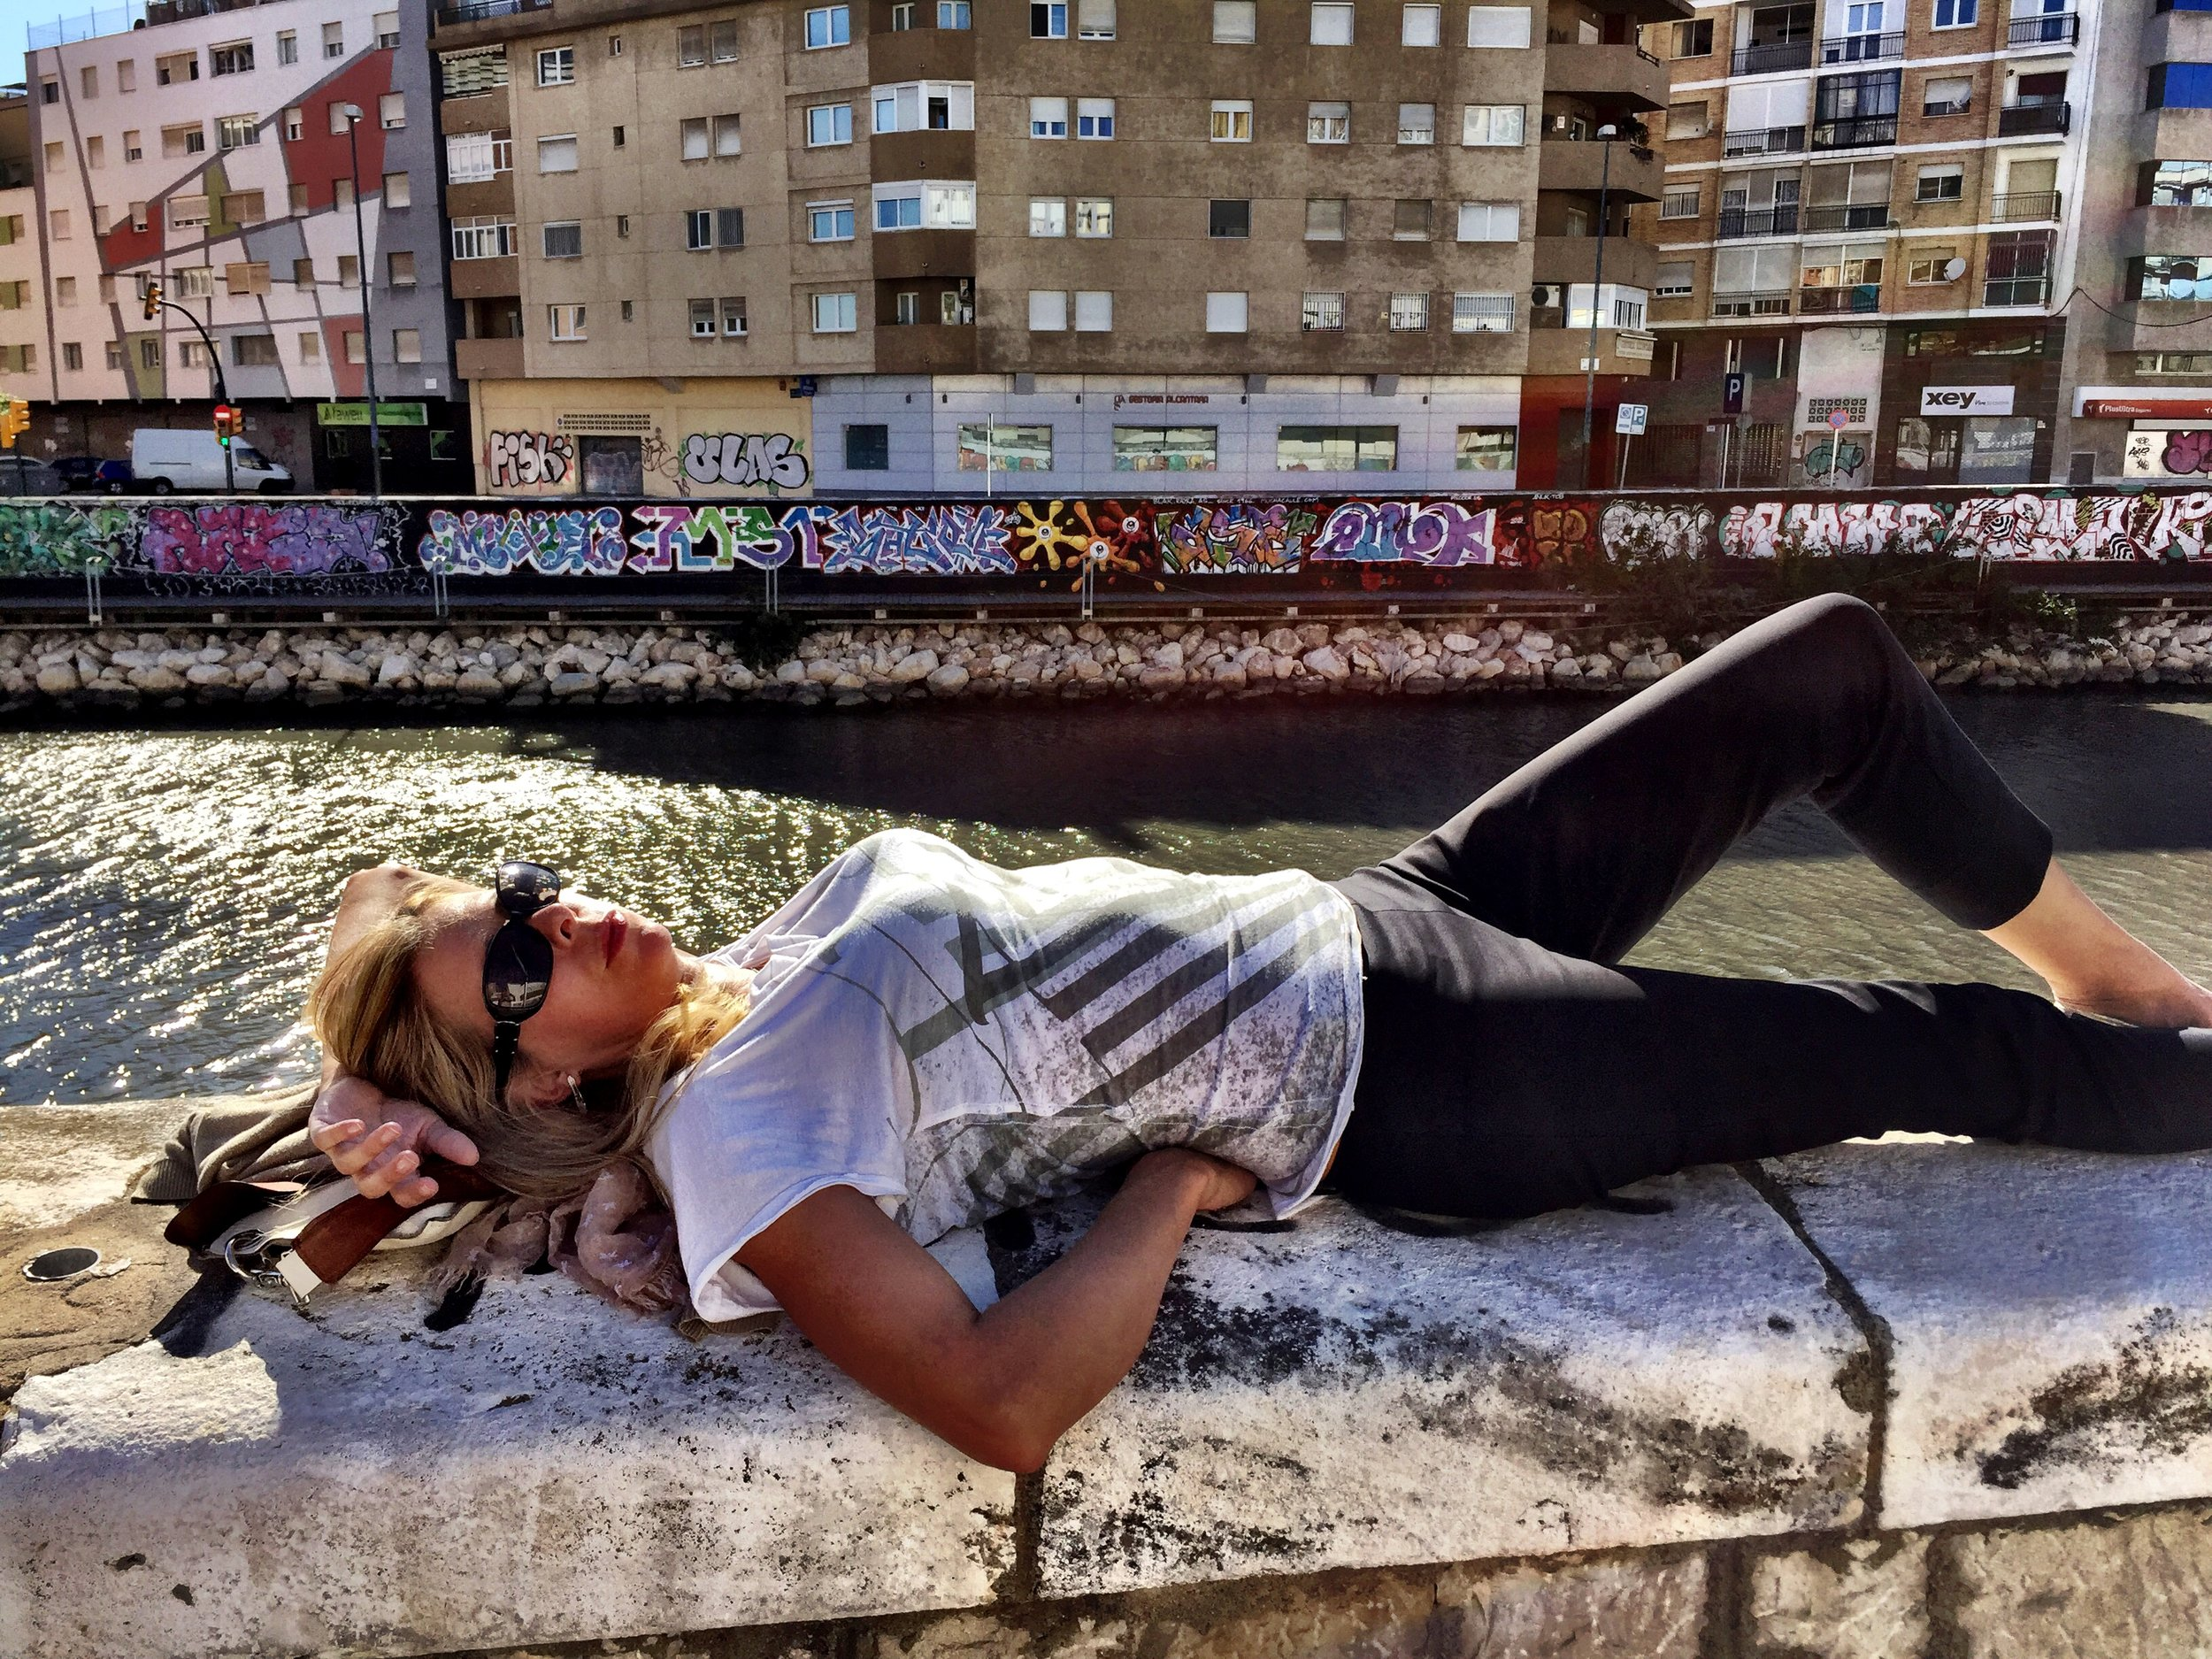 And if your street art hunt gets to be too much, just take a nap along the Guadalmedina River like Jo